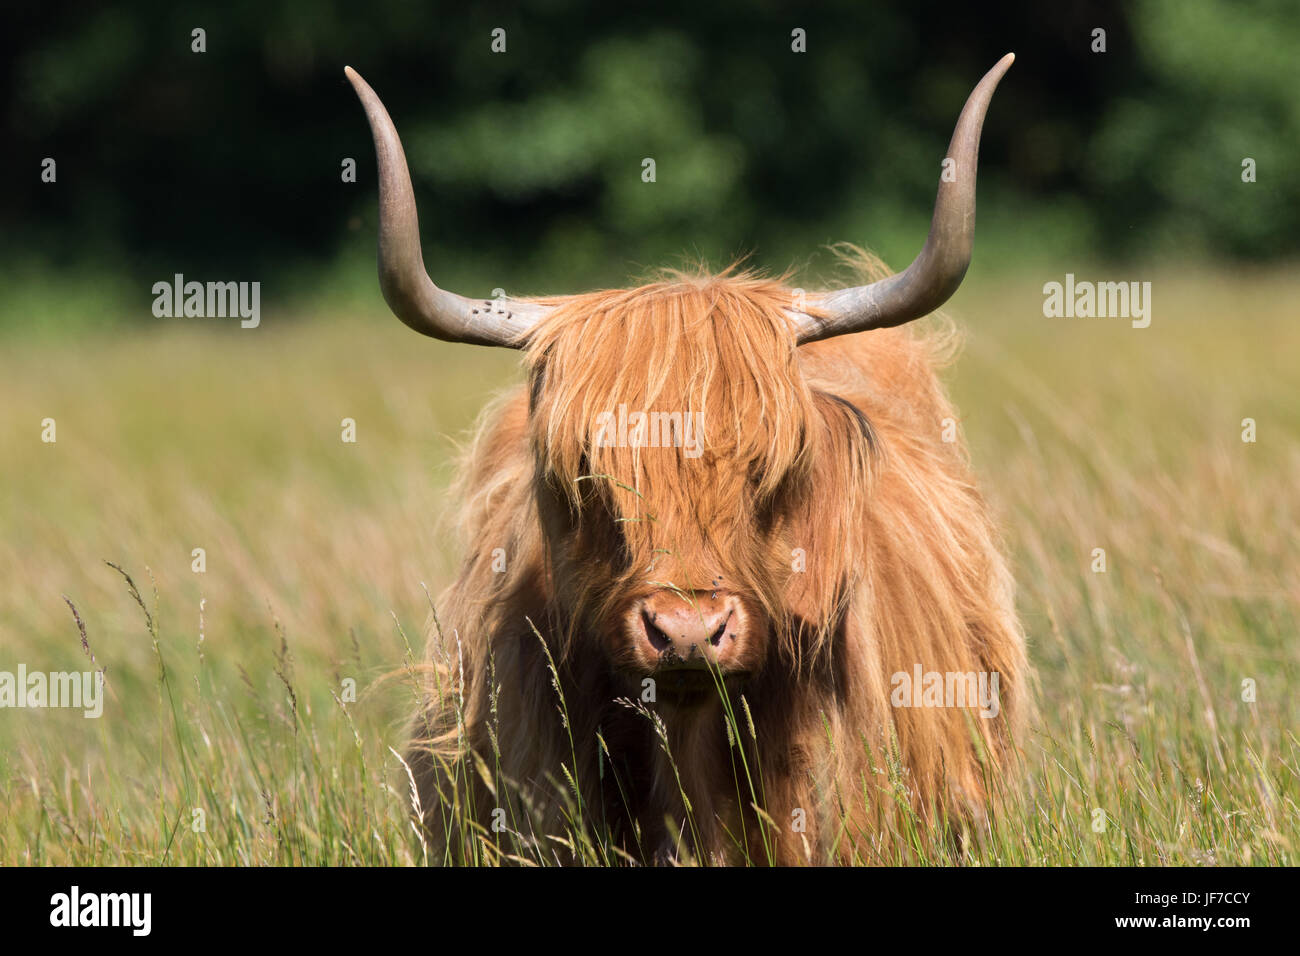 headshot of a Highland Cow (Bos taurus) - Stock Image